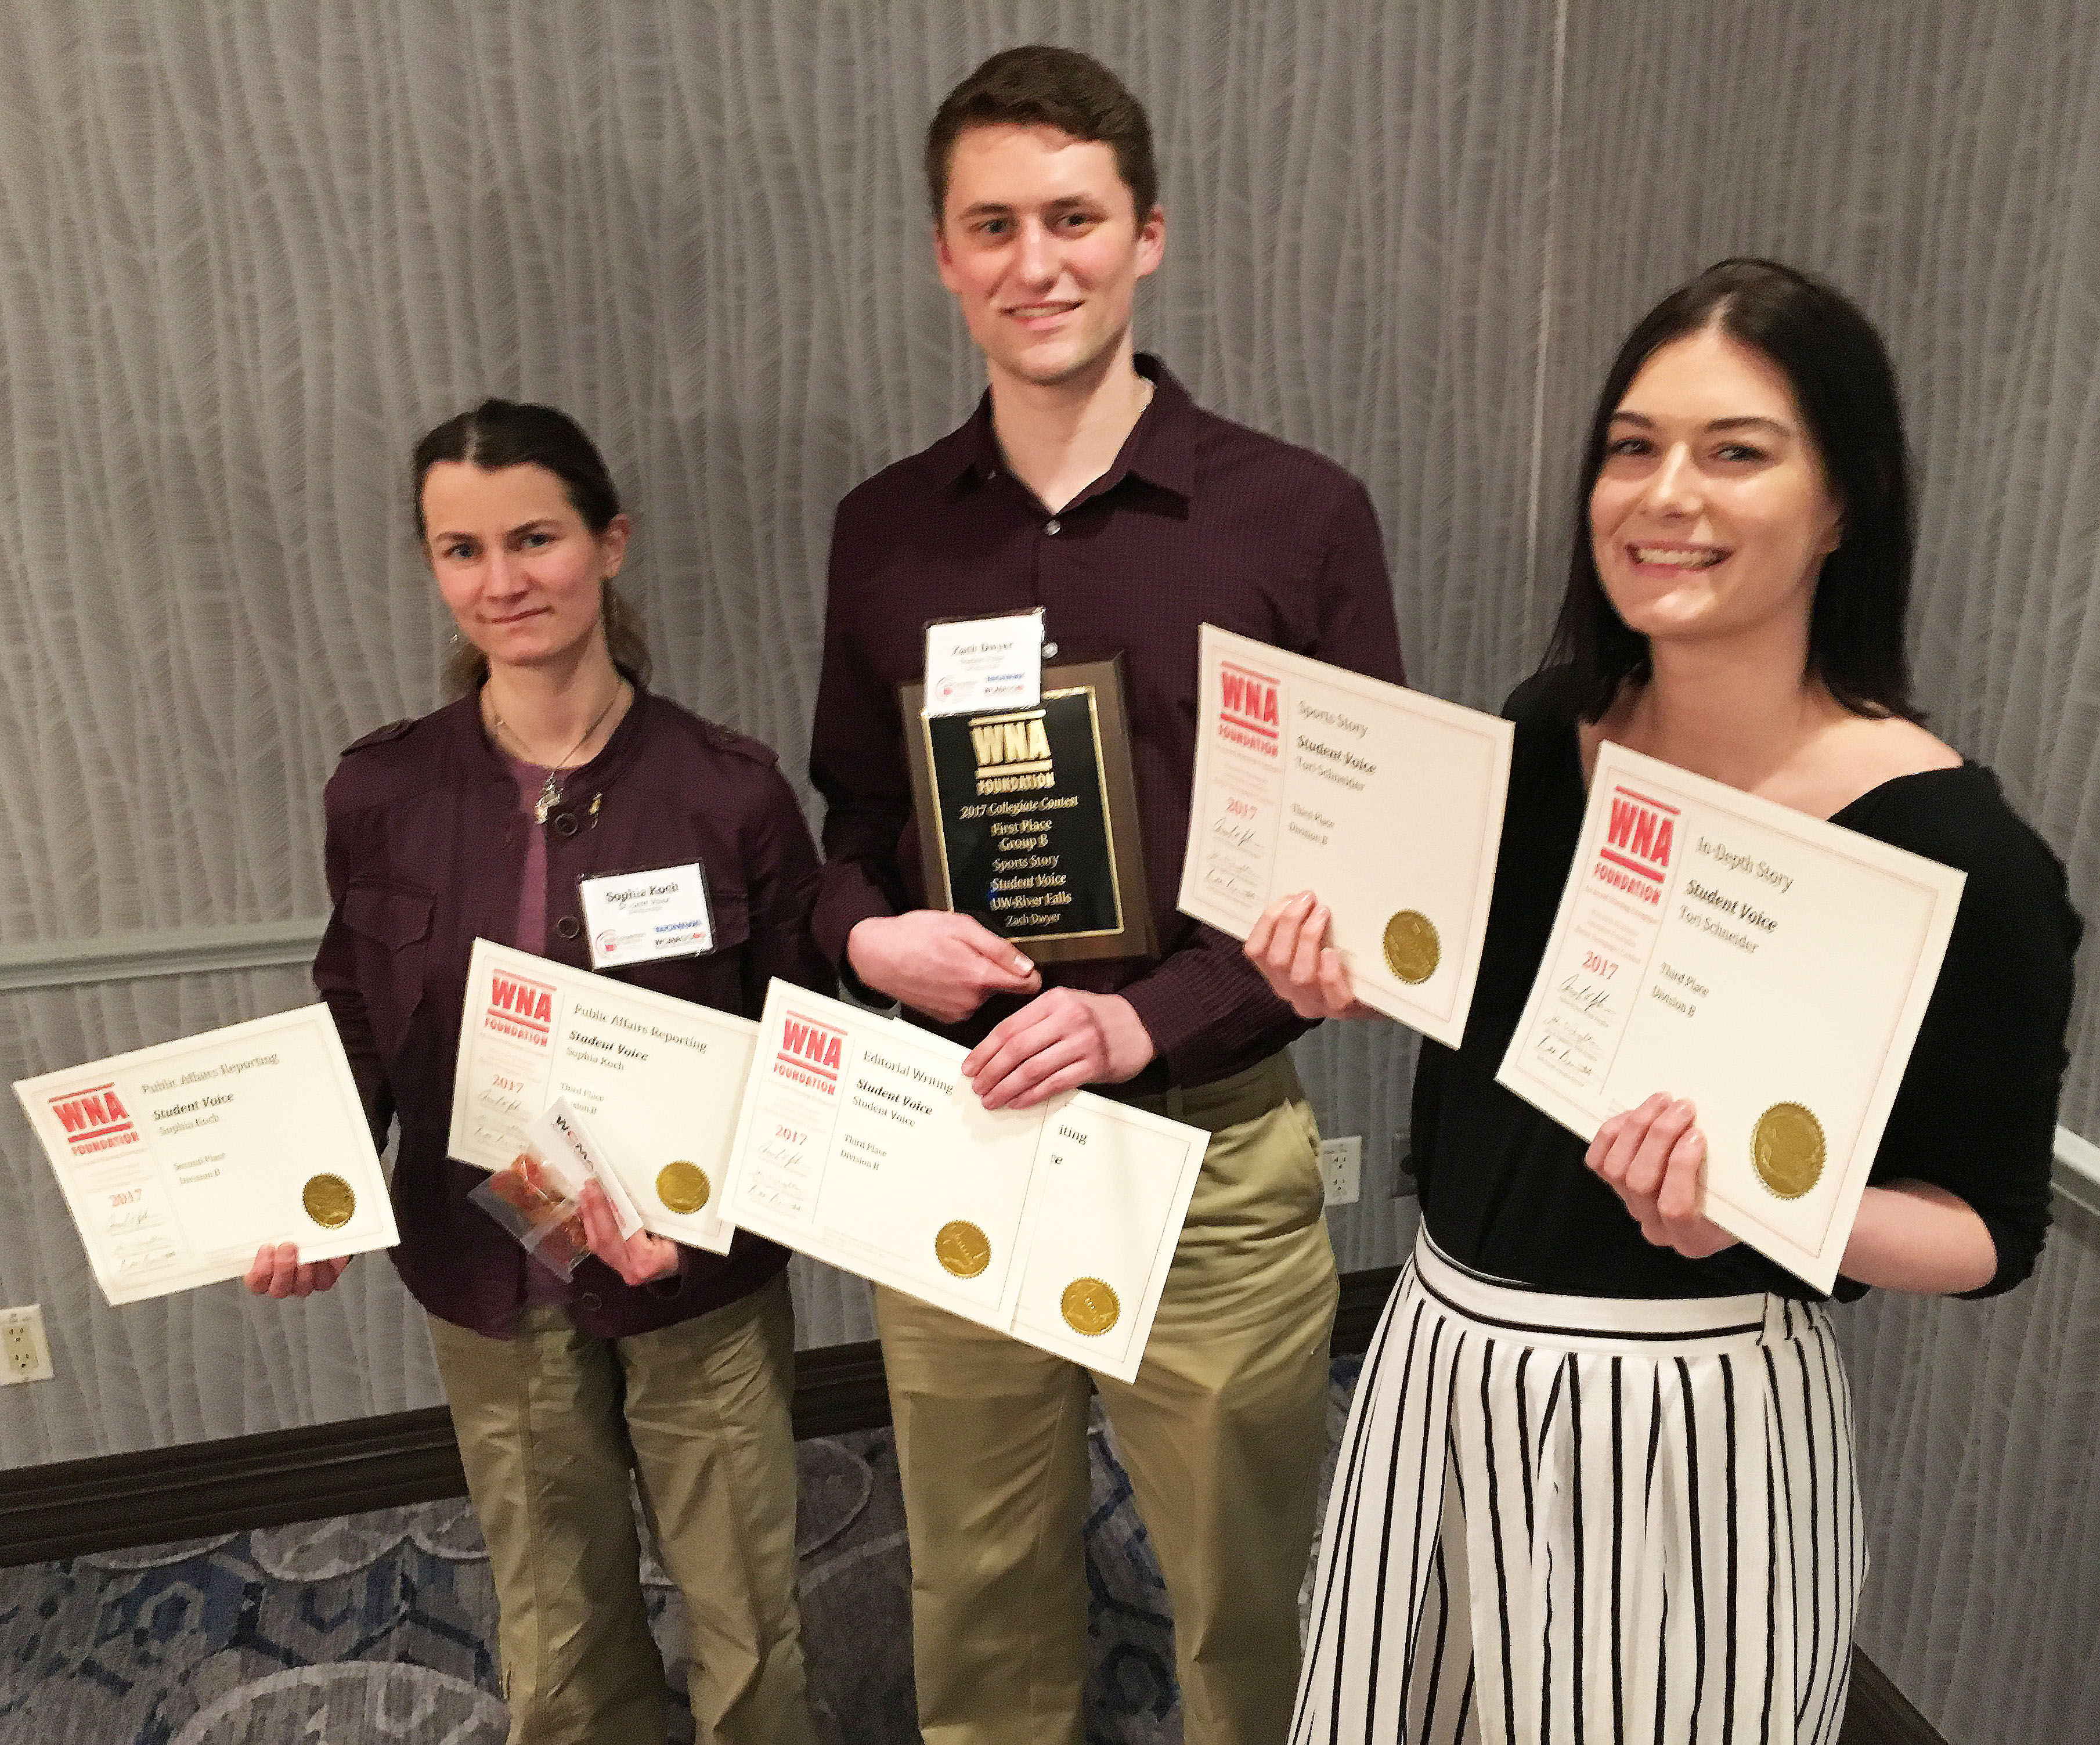 UWRF Student Voice Assistant Editor Sophia Koch, Editor Zach Dwyer and former photo editor Tori Schneider collected their awards Friday in Madison at the Wisconsin College Media Association Honors Luncheon. (Photo by Mike Dorsher)